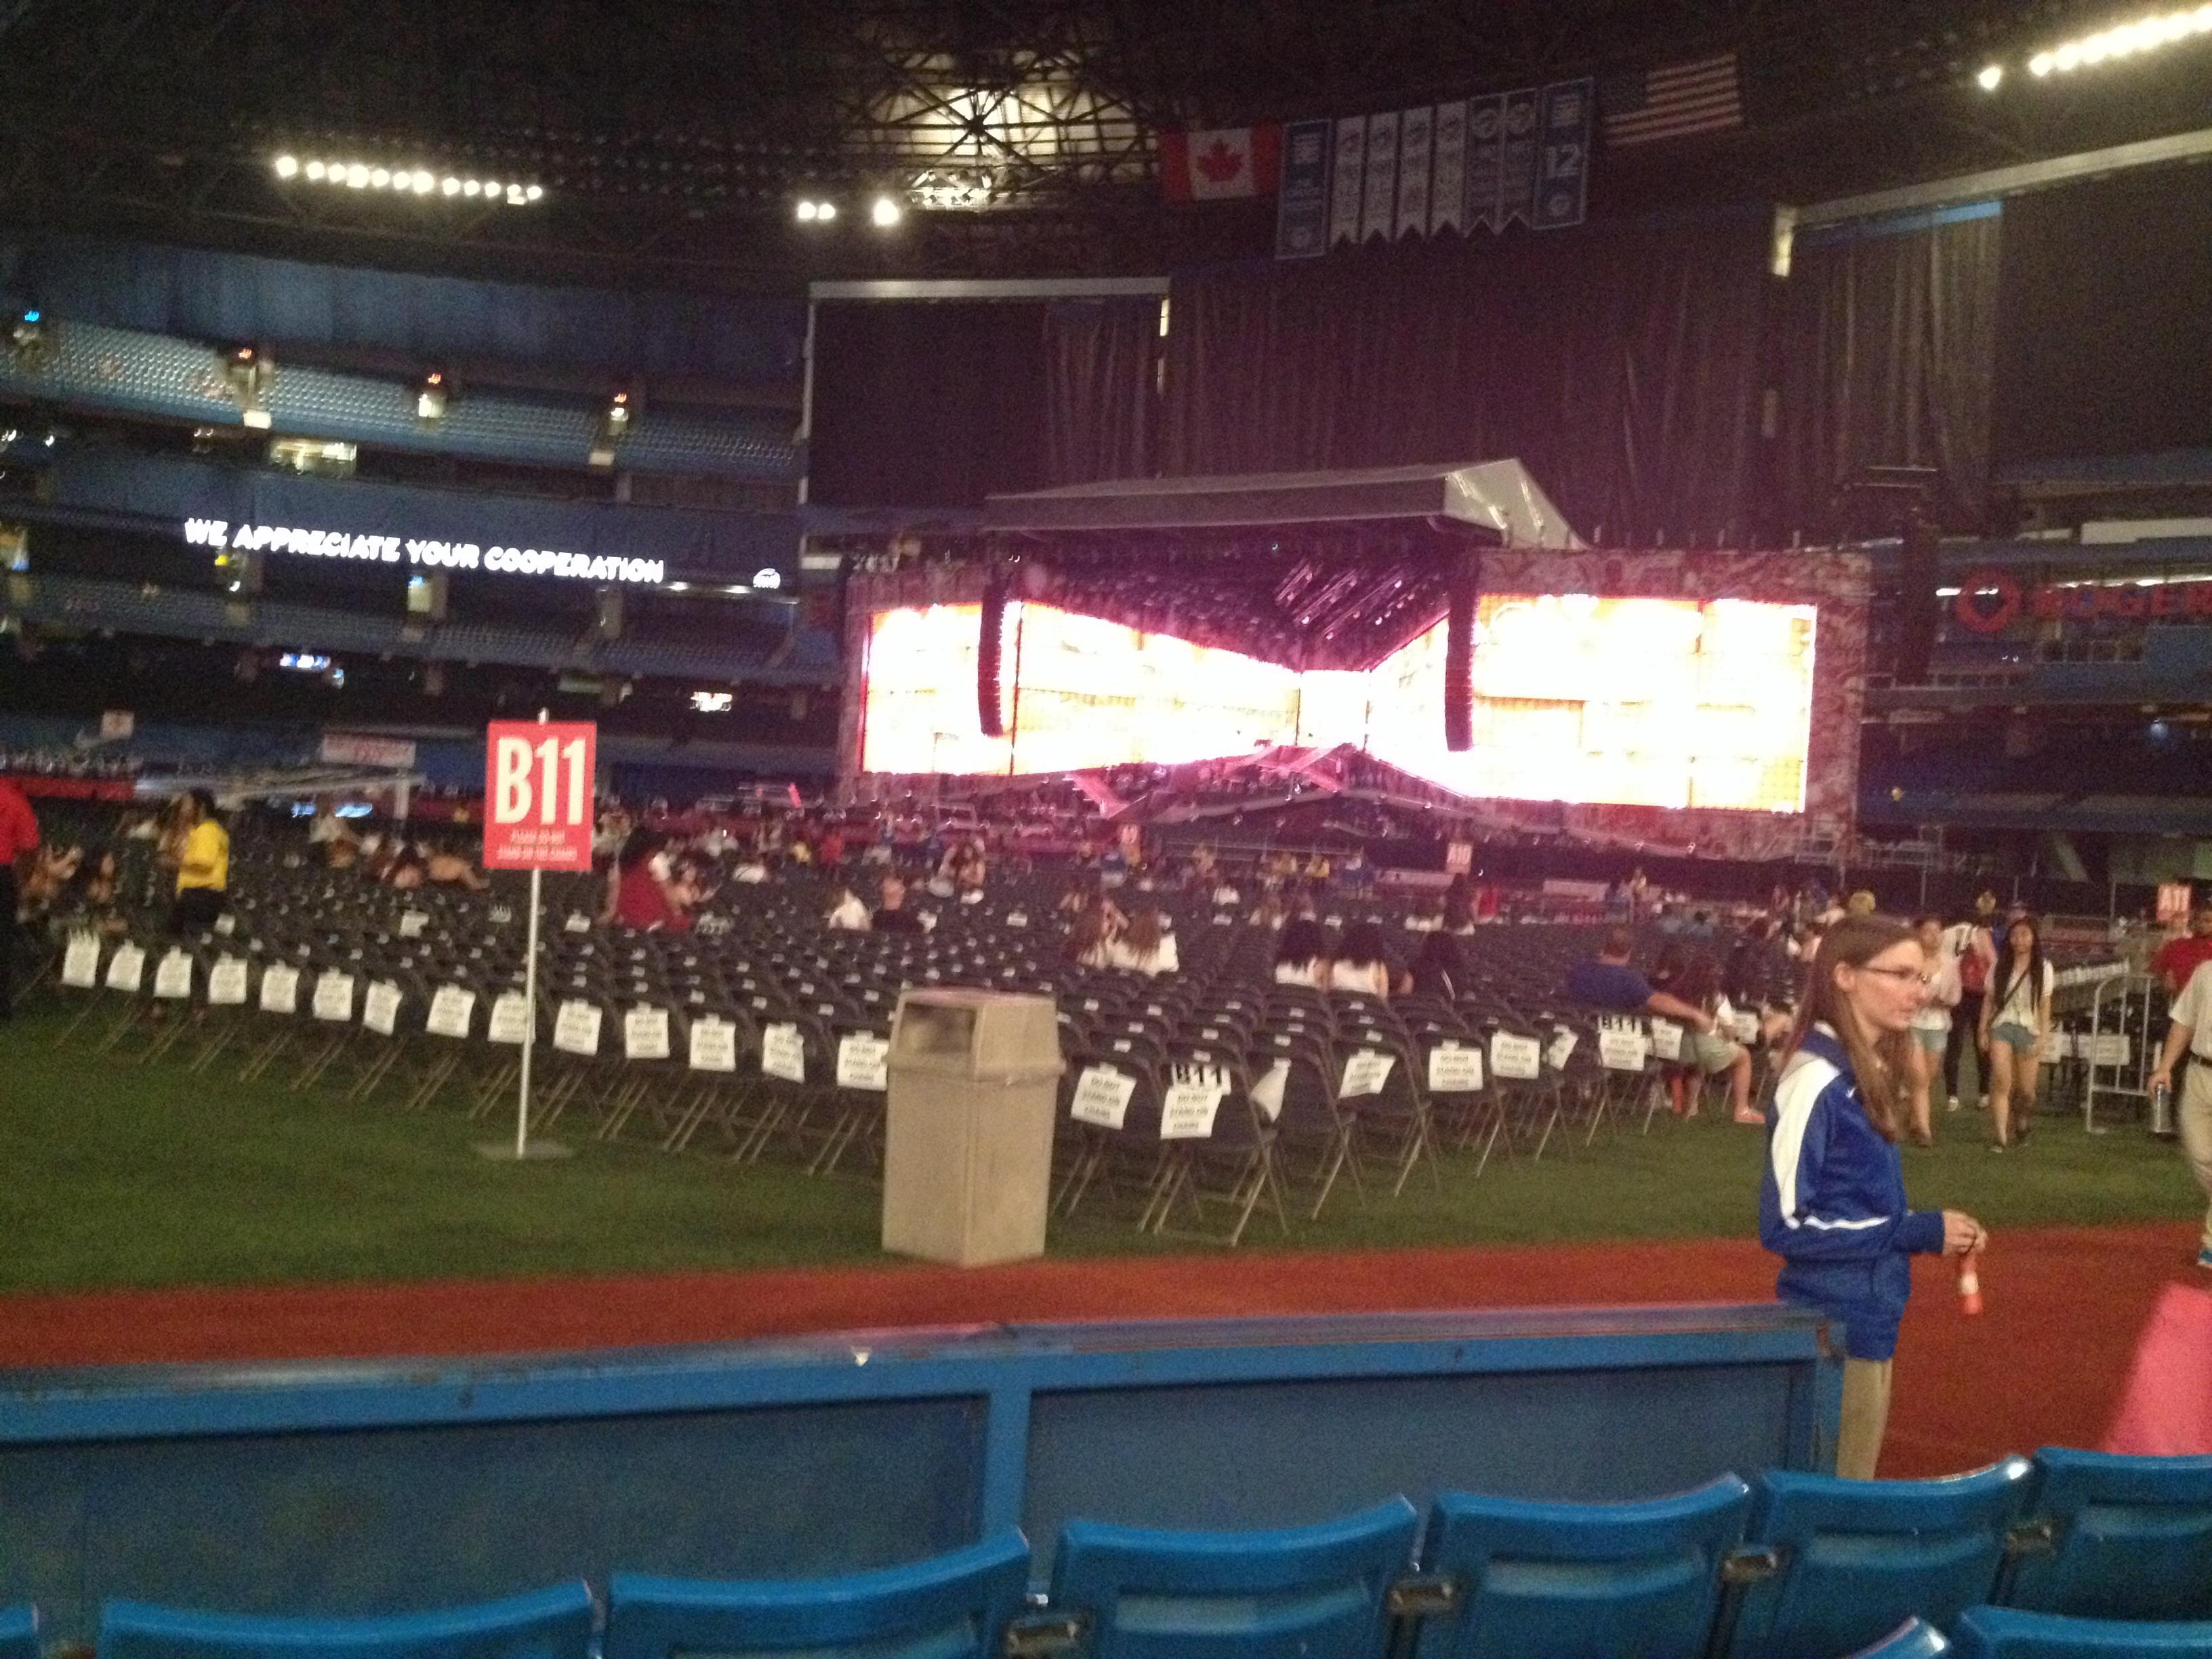 Rogers Centre Section 114 Concert Seating Rateyourseats Com